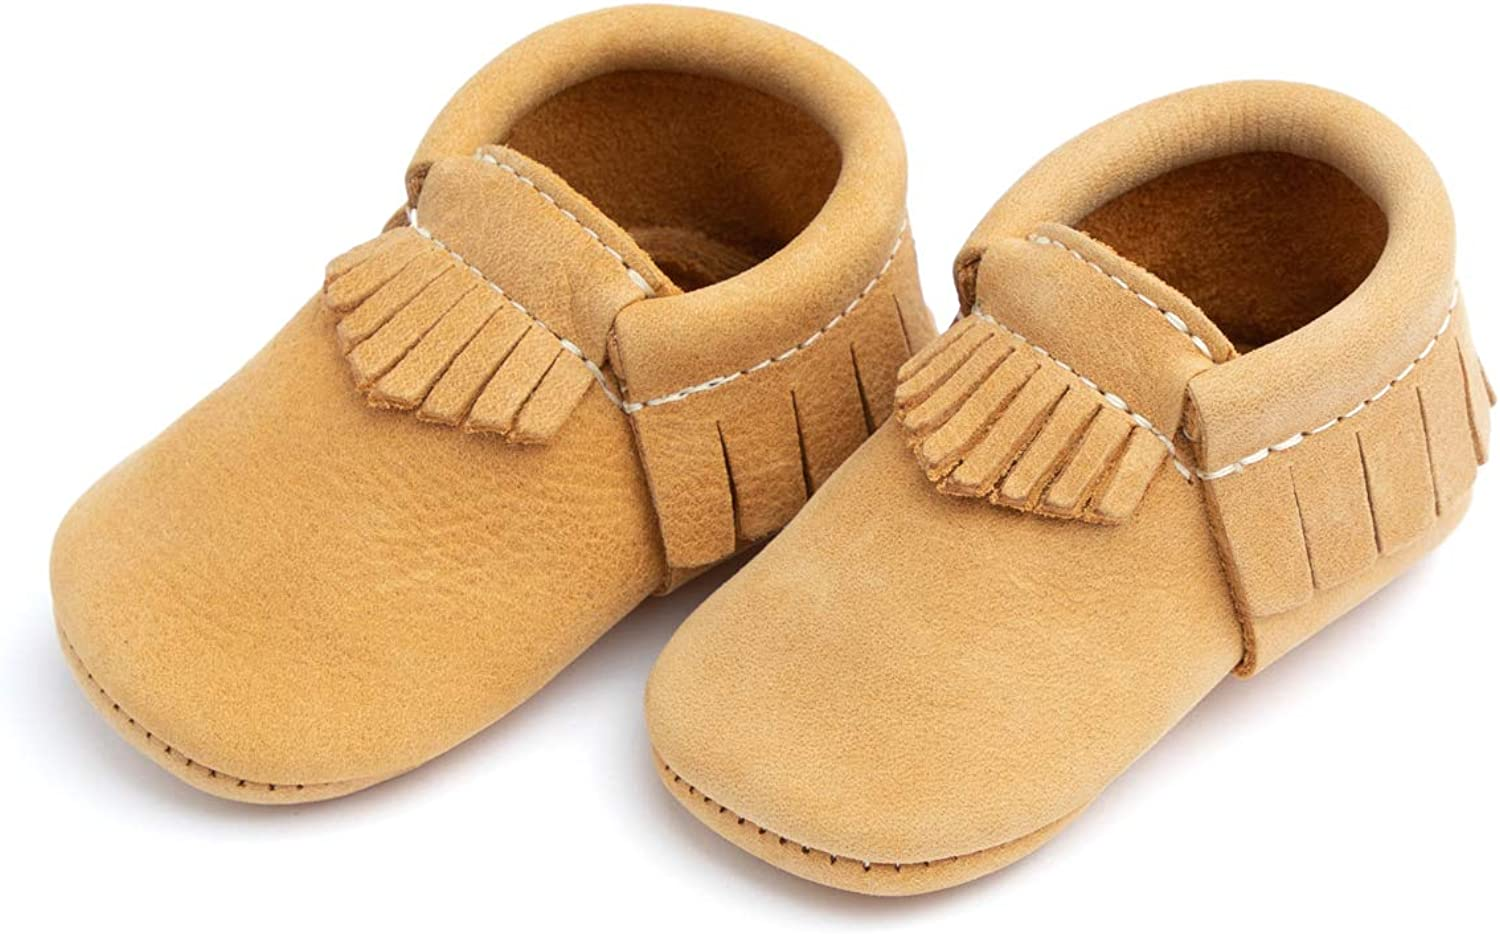 Multi-Color Soft Sole Leather Moccasins Baby Girl Boy Shoes Freshly Picked